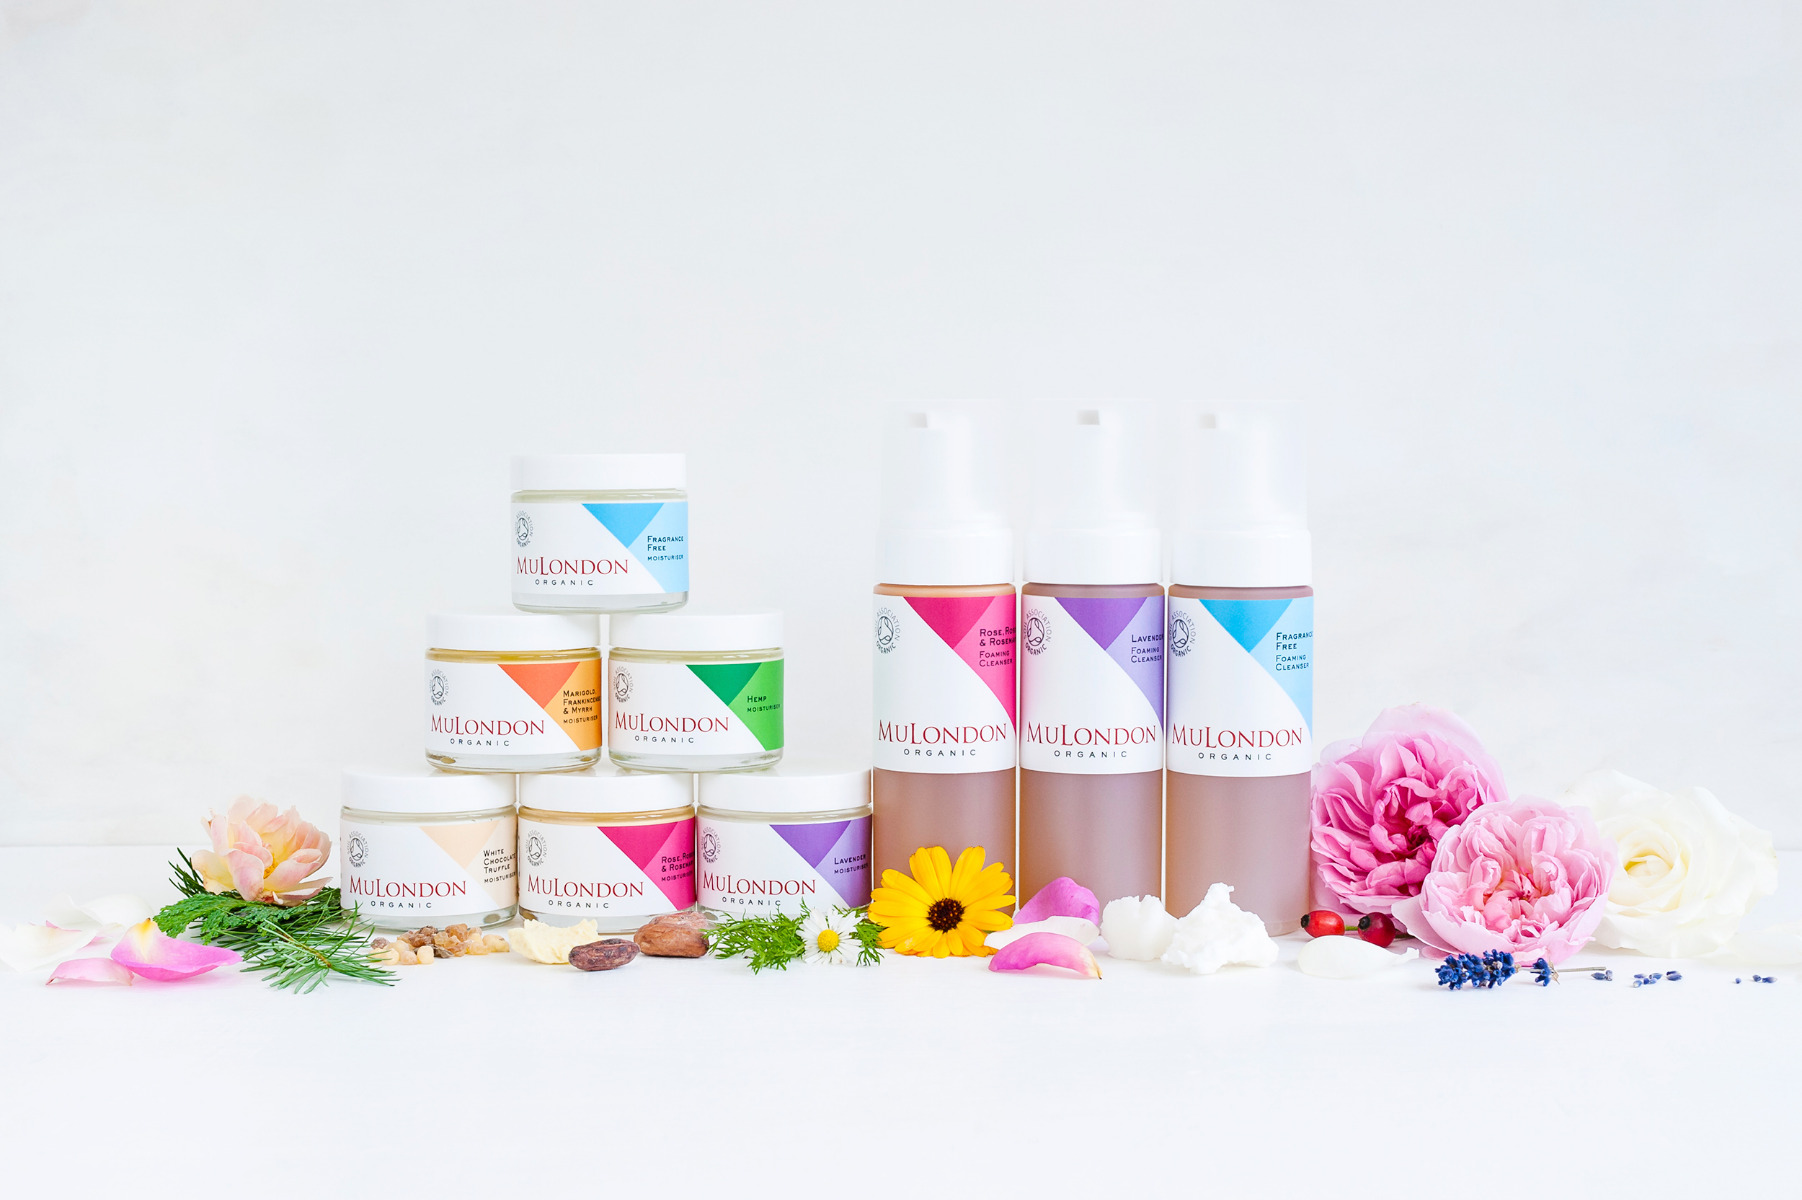 MuLondon Organic Skin Care Products